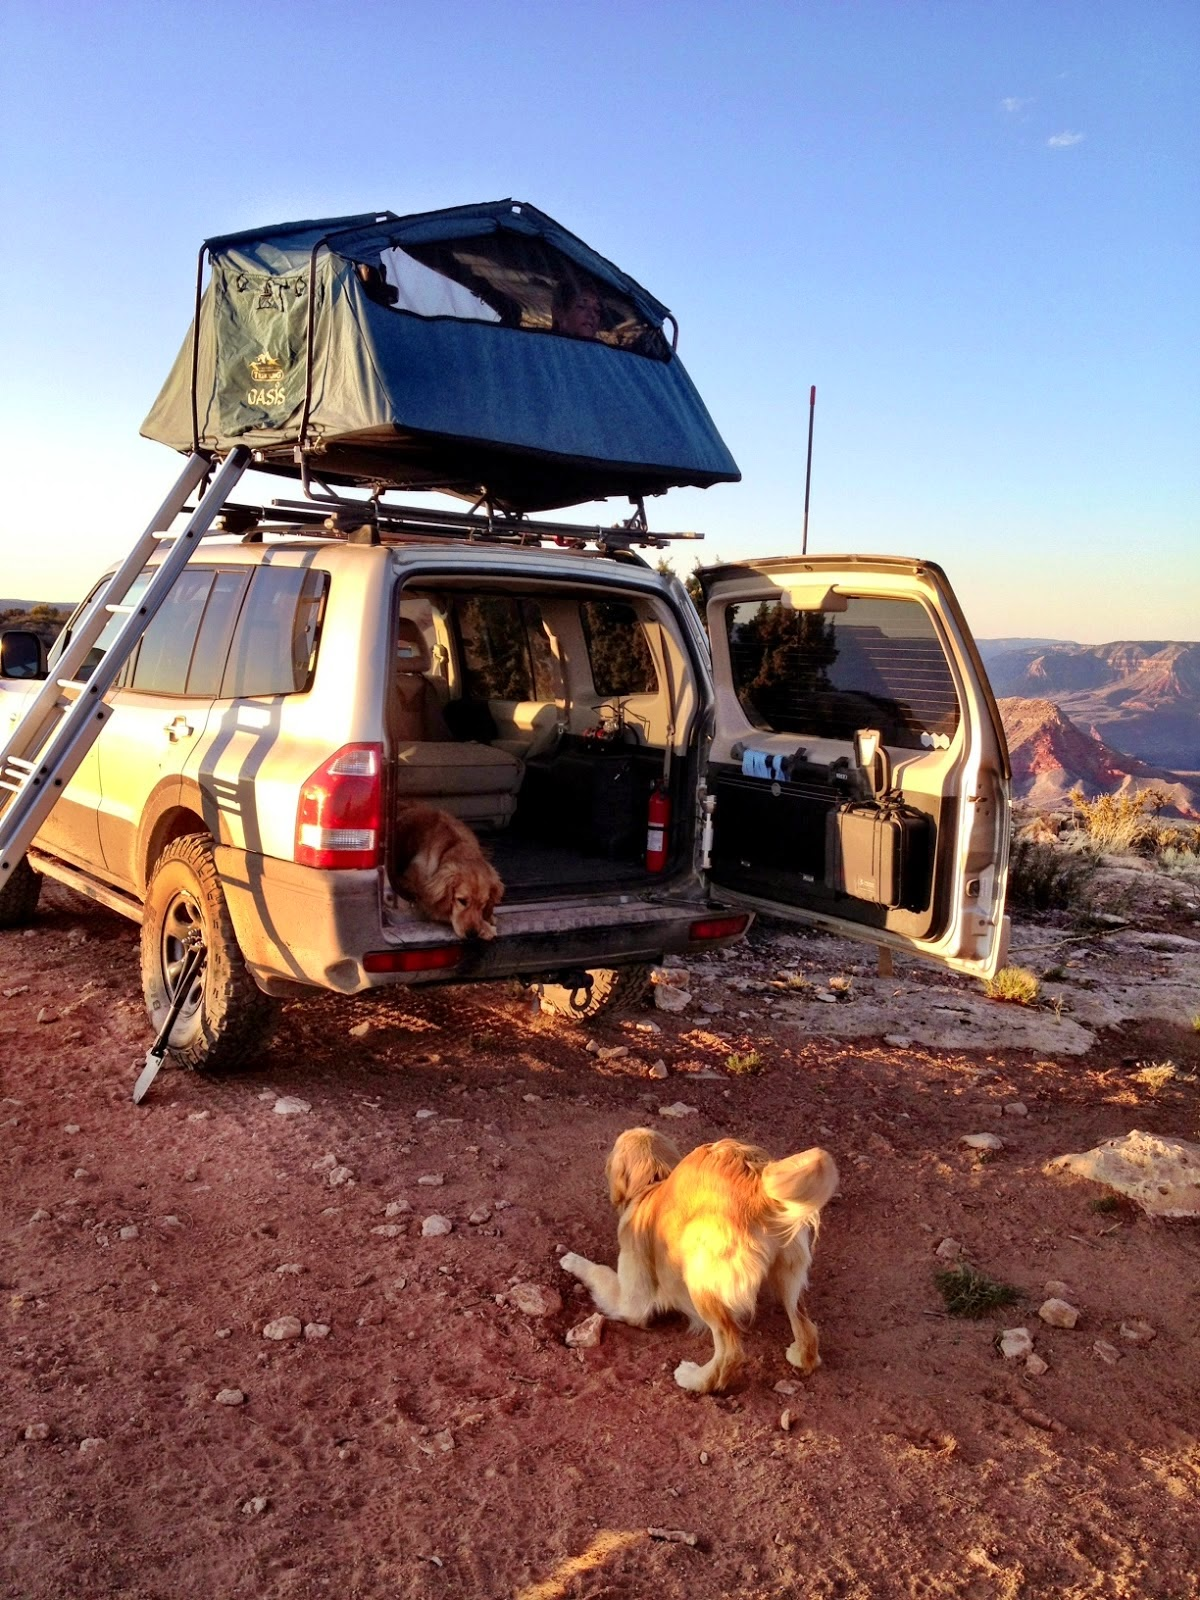 The Oasis II was made in France by Trekking and had a limited distribution in the States primarily through Rogue River Trading Company which appears to be ... & Oasis II Roof-top Tent